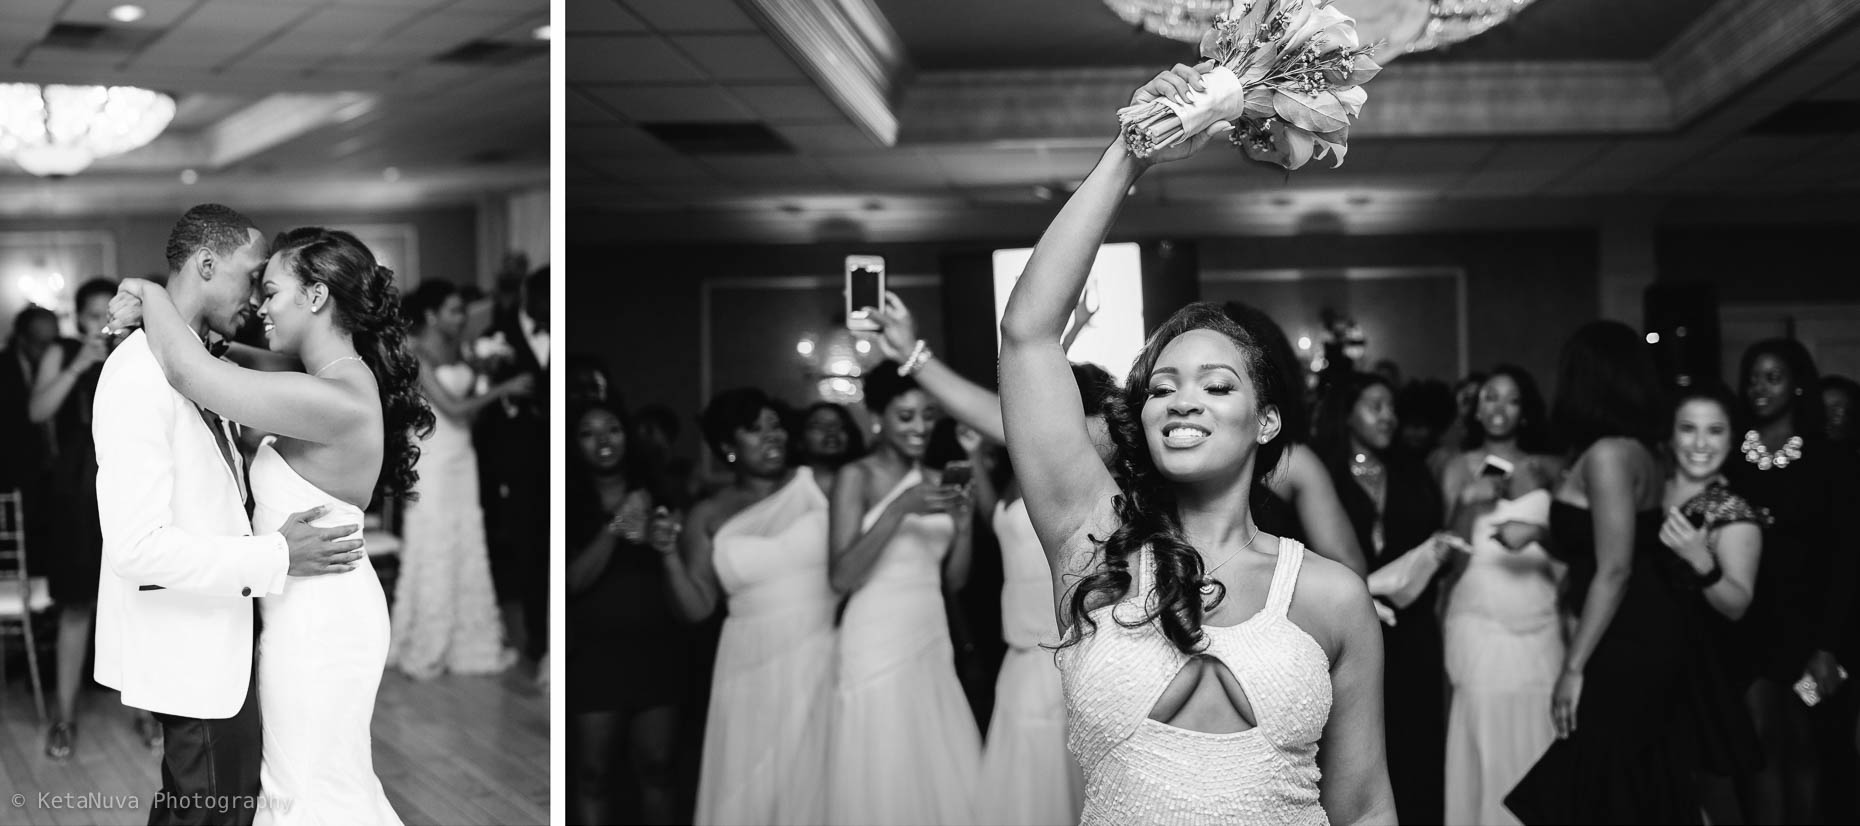 Northampton Valley Country Club Wedding | Ashley & Anthony Northampton Valley Country Club Wedding Photos PA Wedding Photographers 44